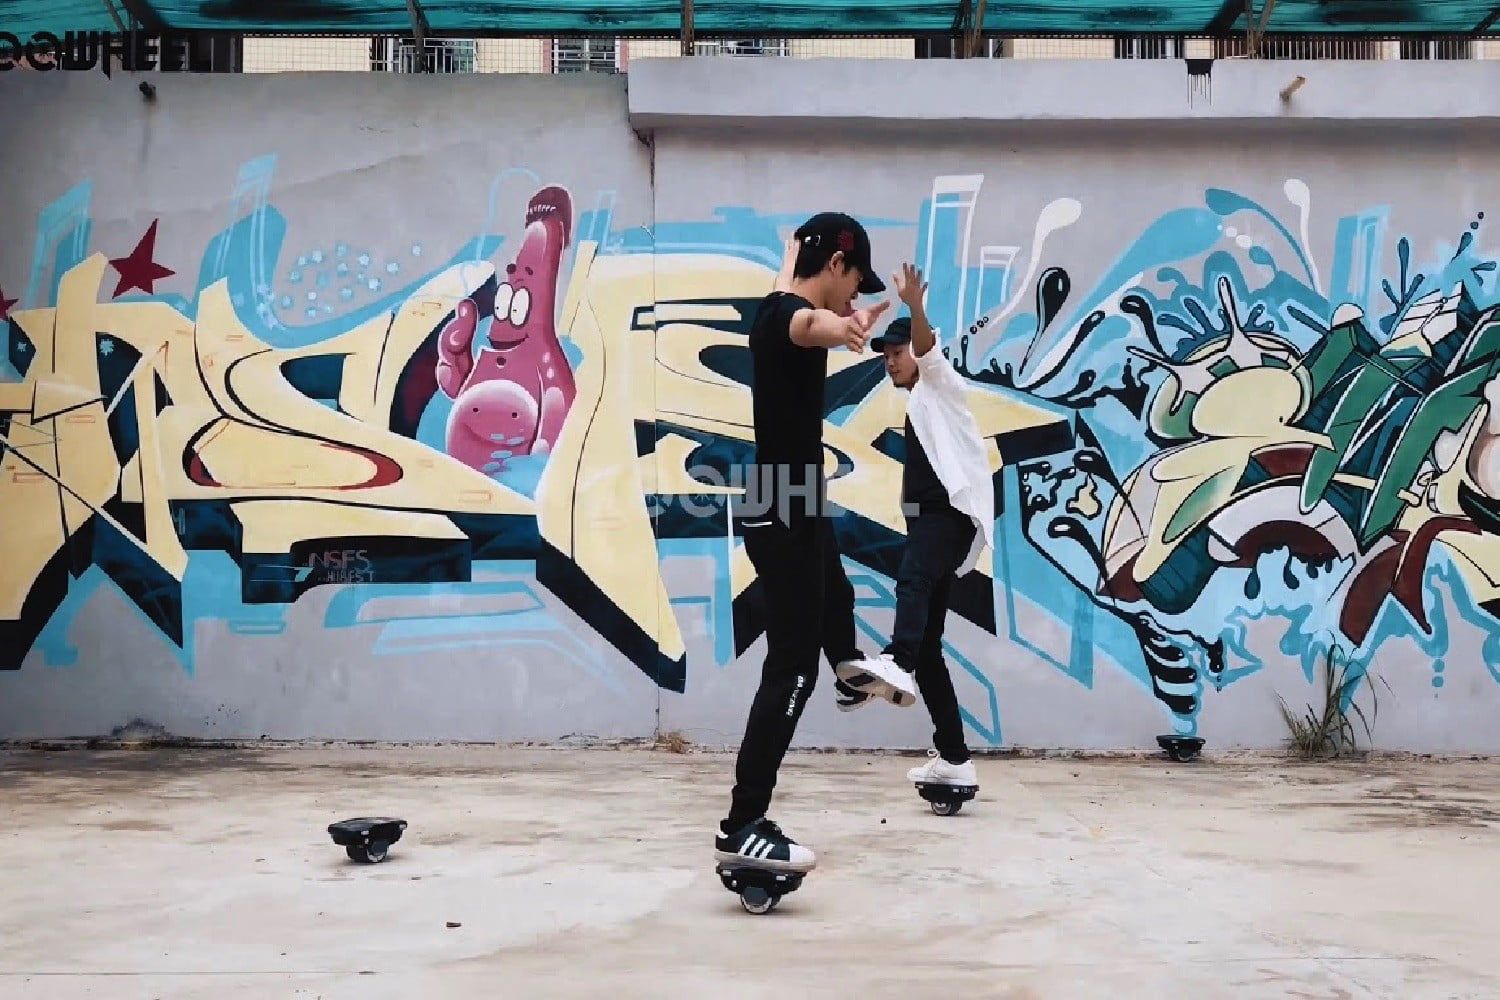 New Hovershoes X1 Are Like Motorized Self-Balancing Rollerblades